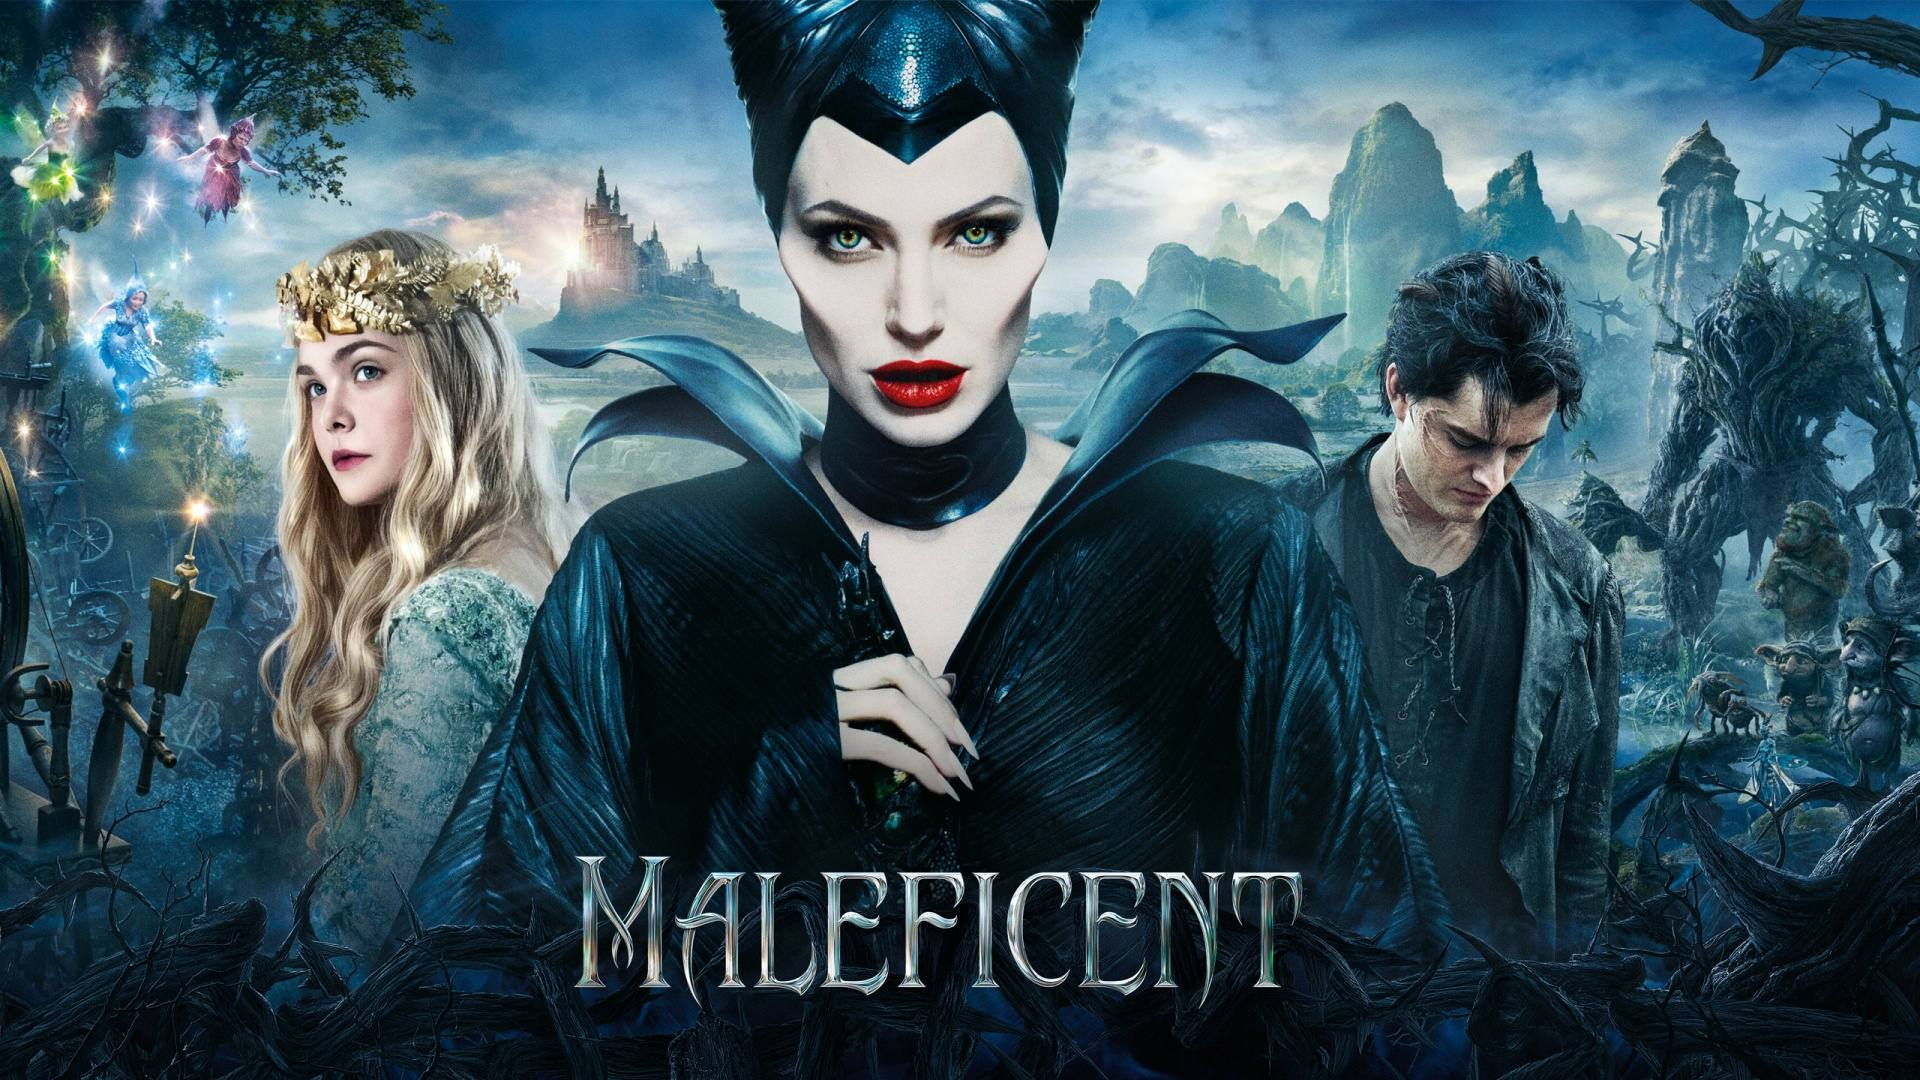 Maleficent Brainofbmw Film Review